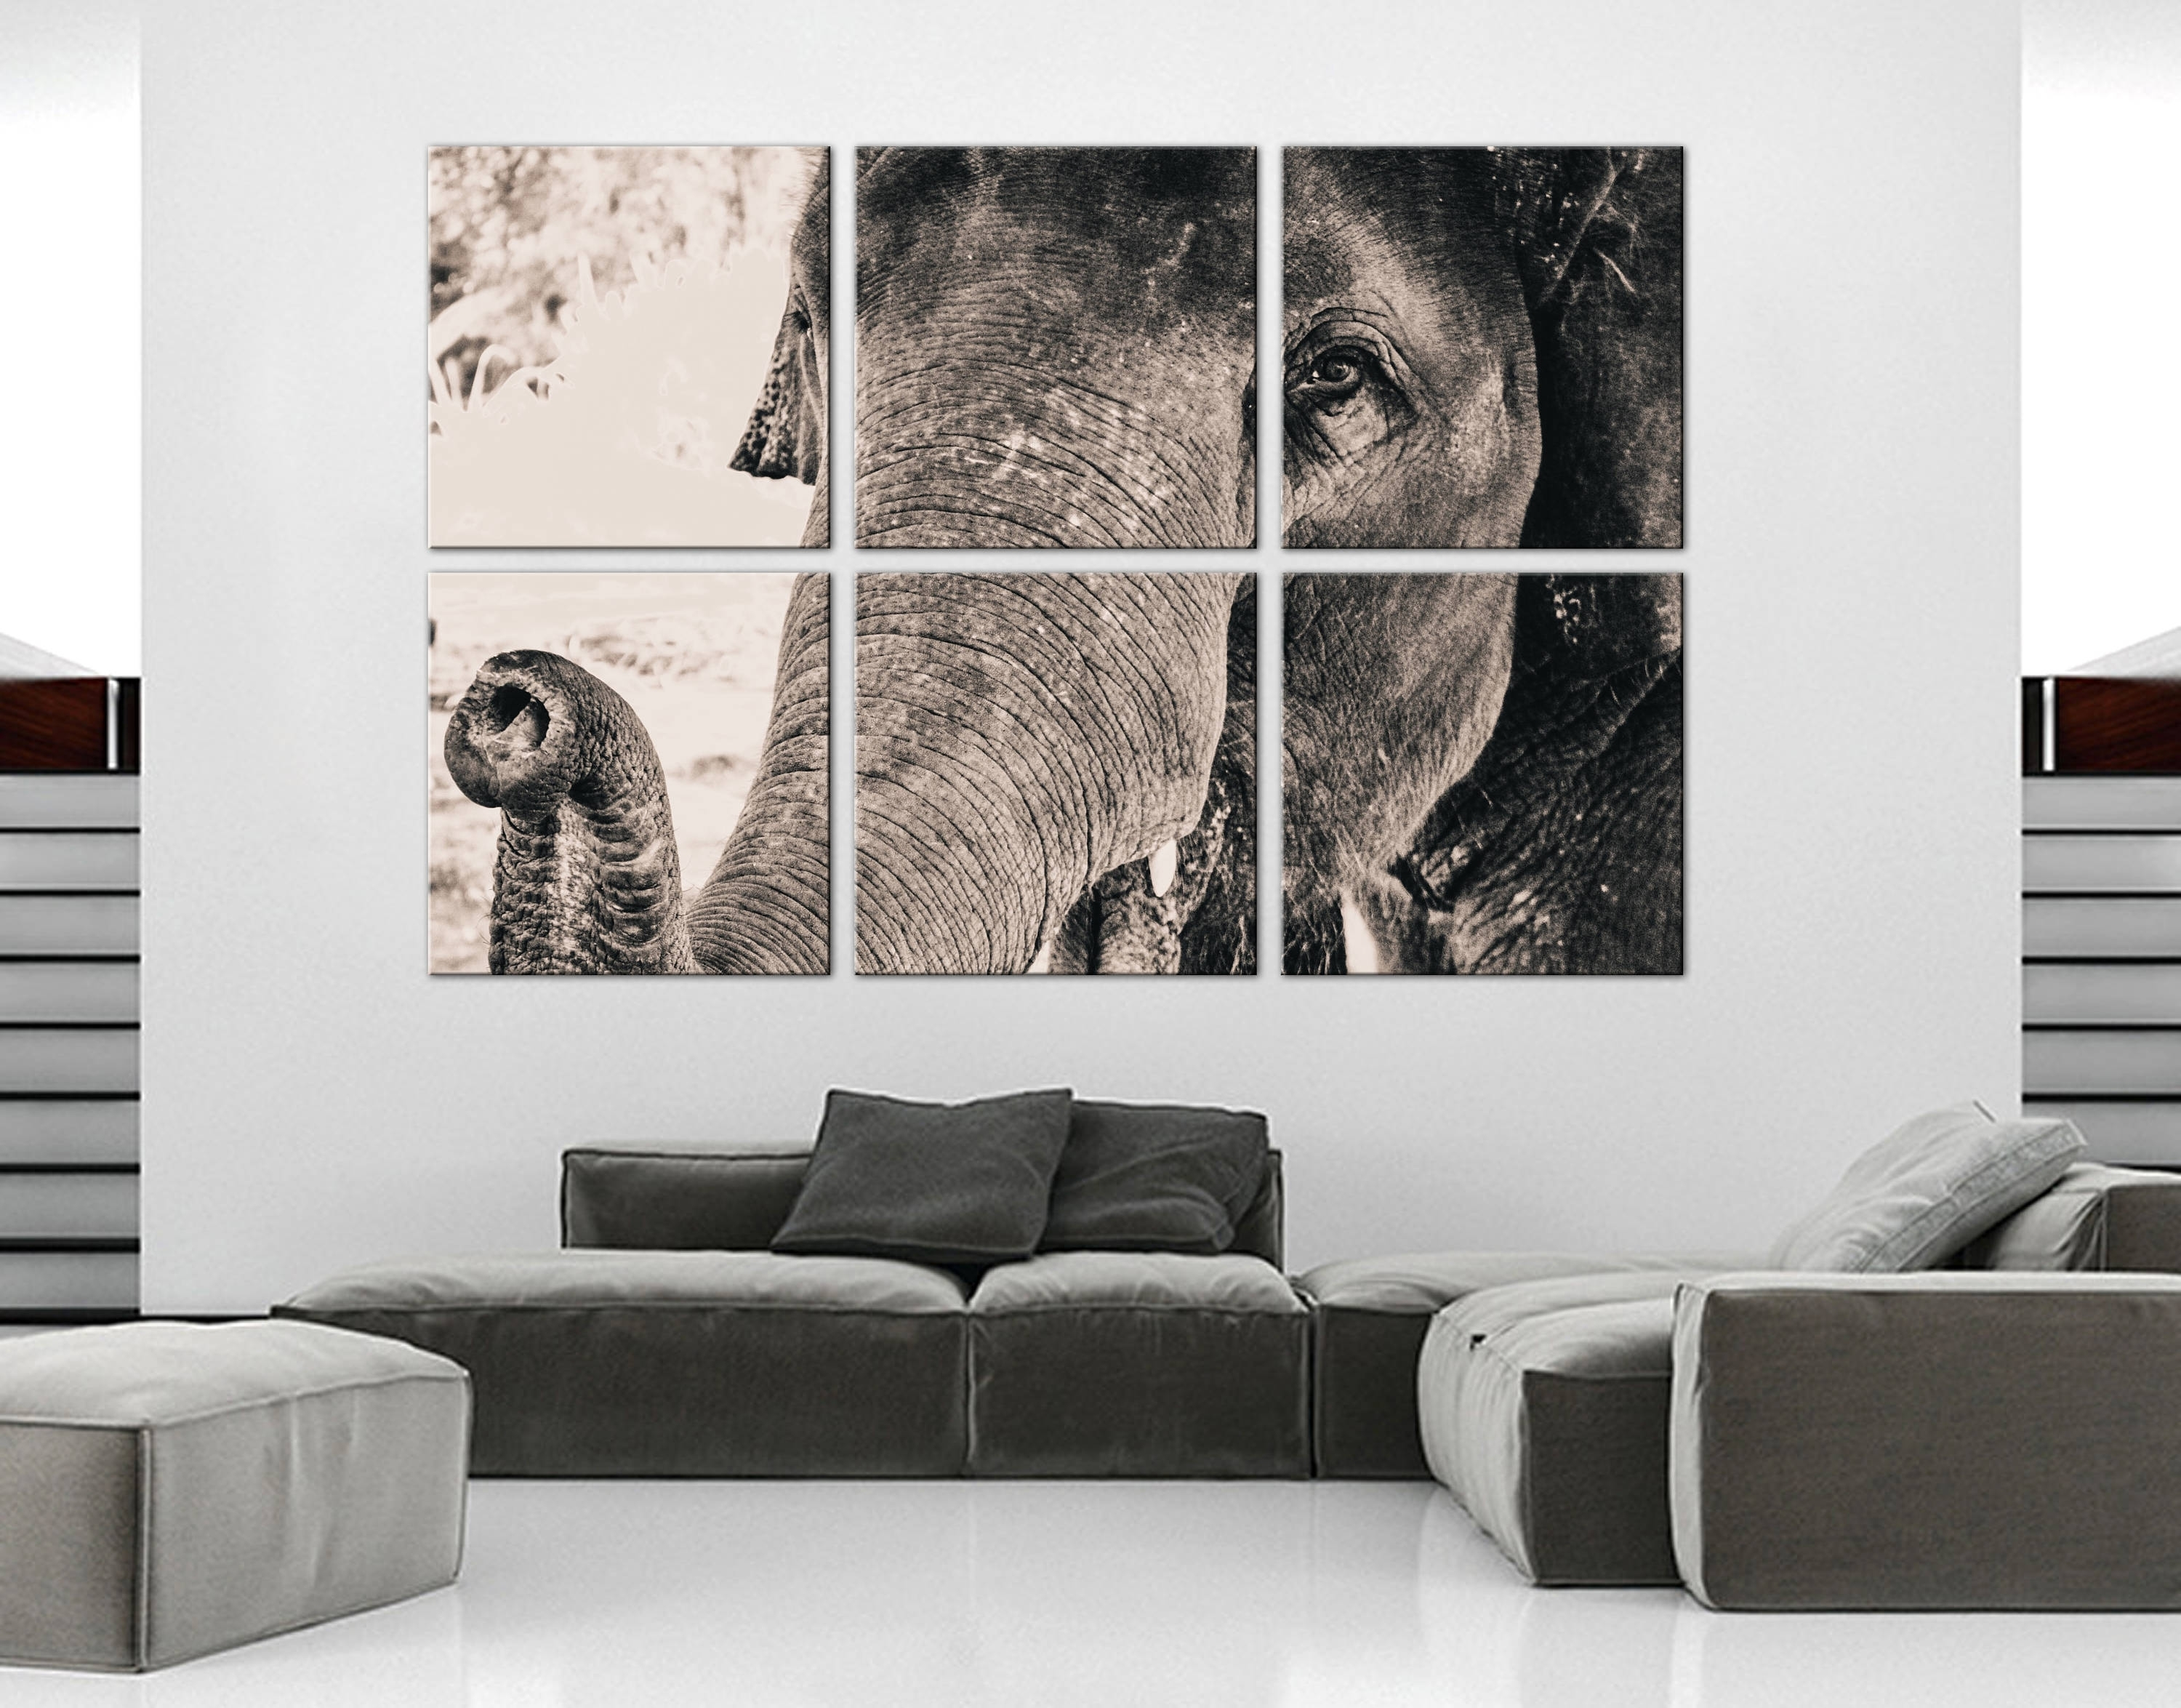 rooms decor and comfy sofa bluebell elephant for living room pin drawing